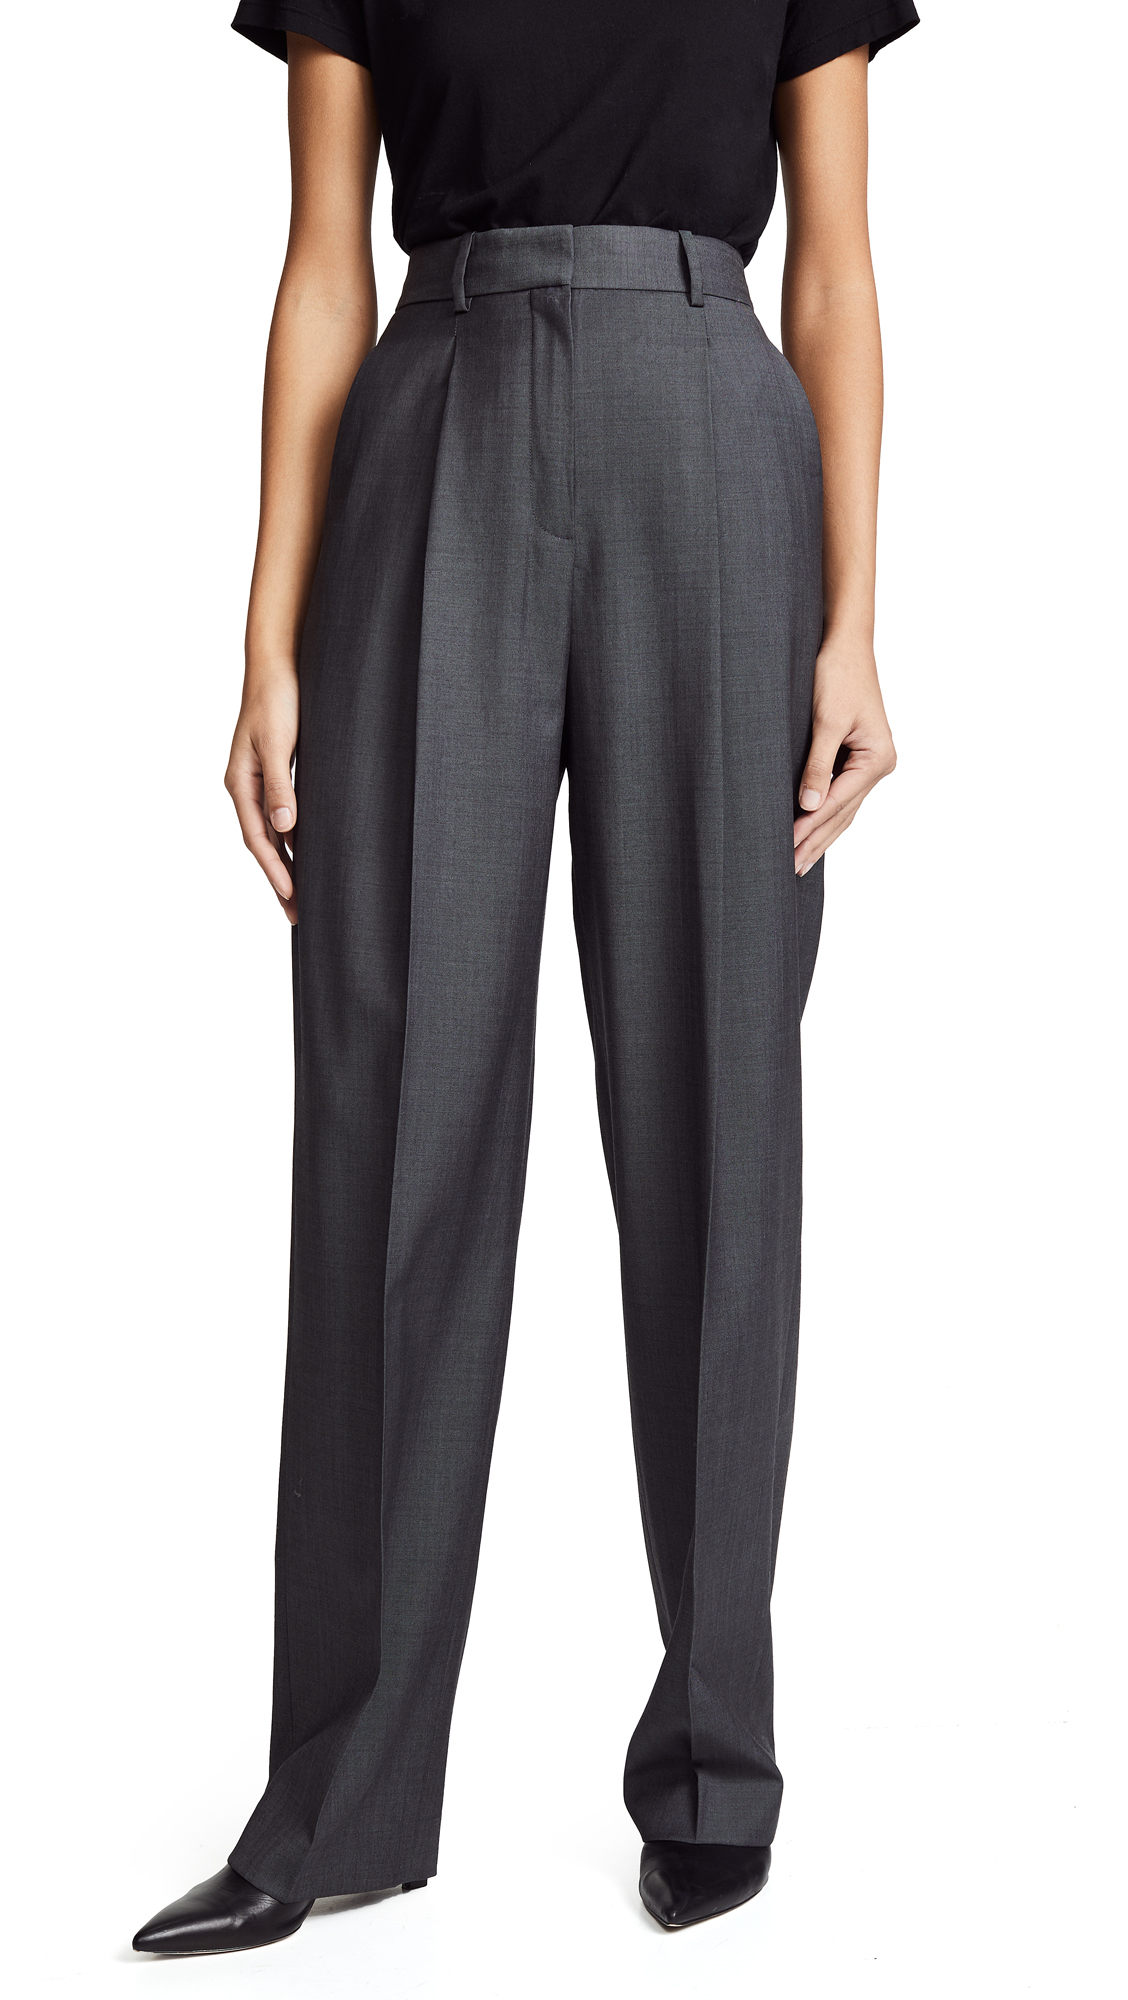 Theory Pleat Trousers - Boulder Grey